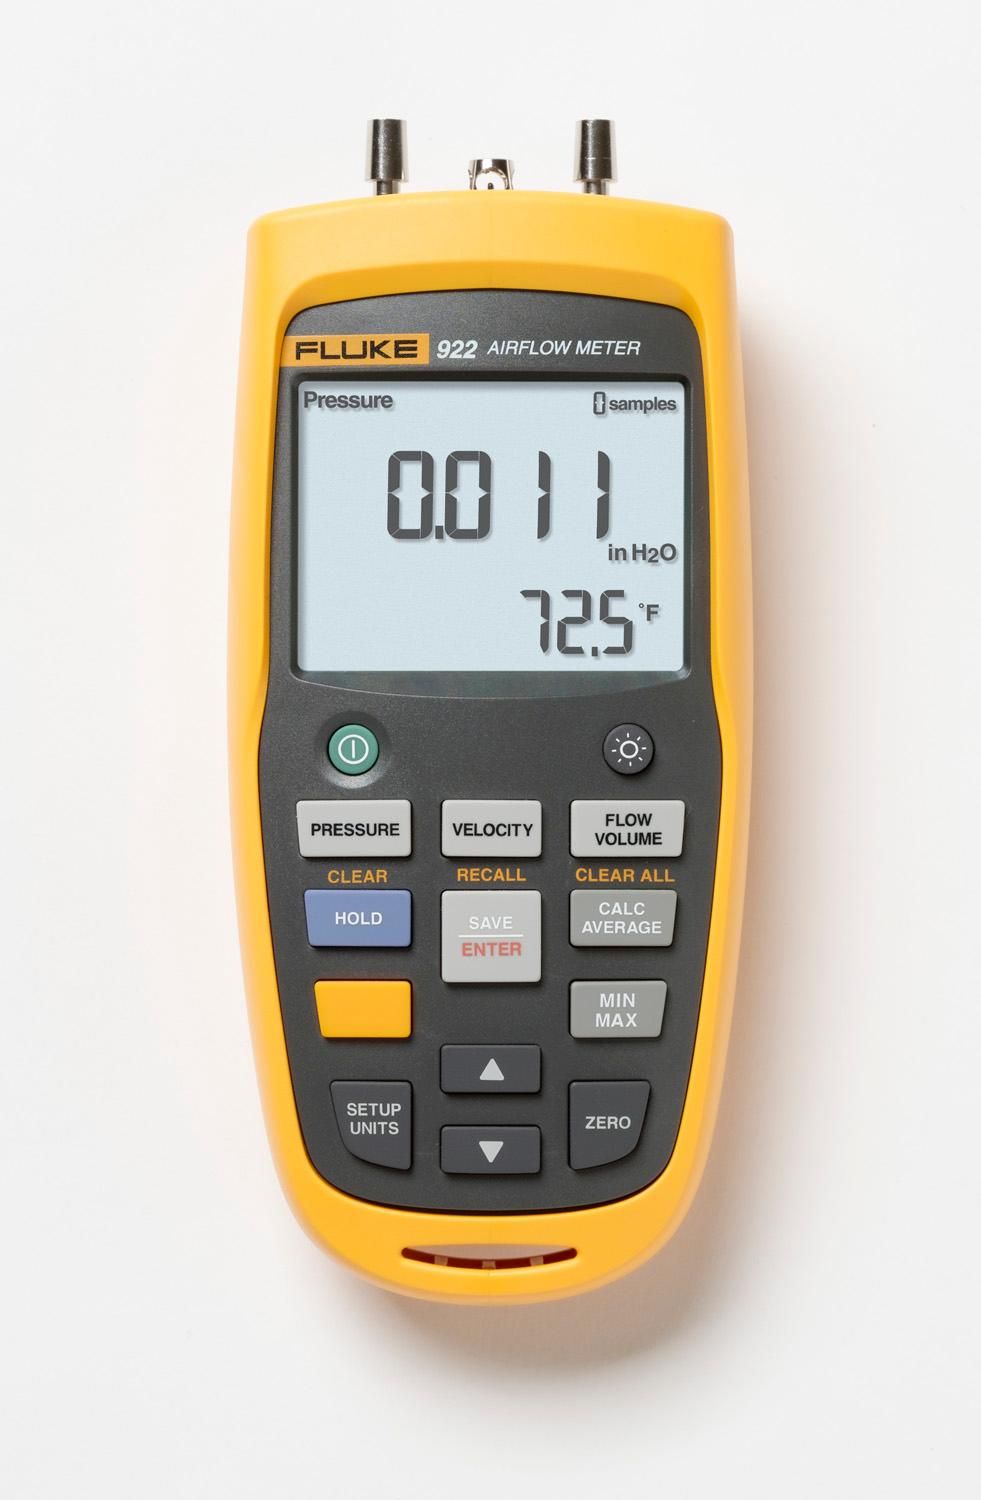 Moisture Probe For Fluke Multimeter : Fluke kit airflow meter with a nist traceable